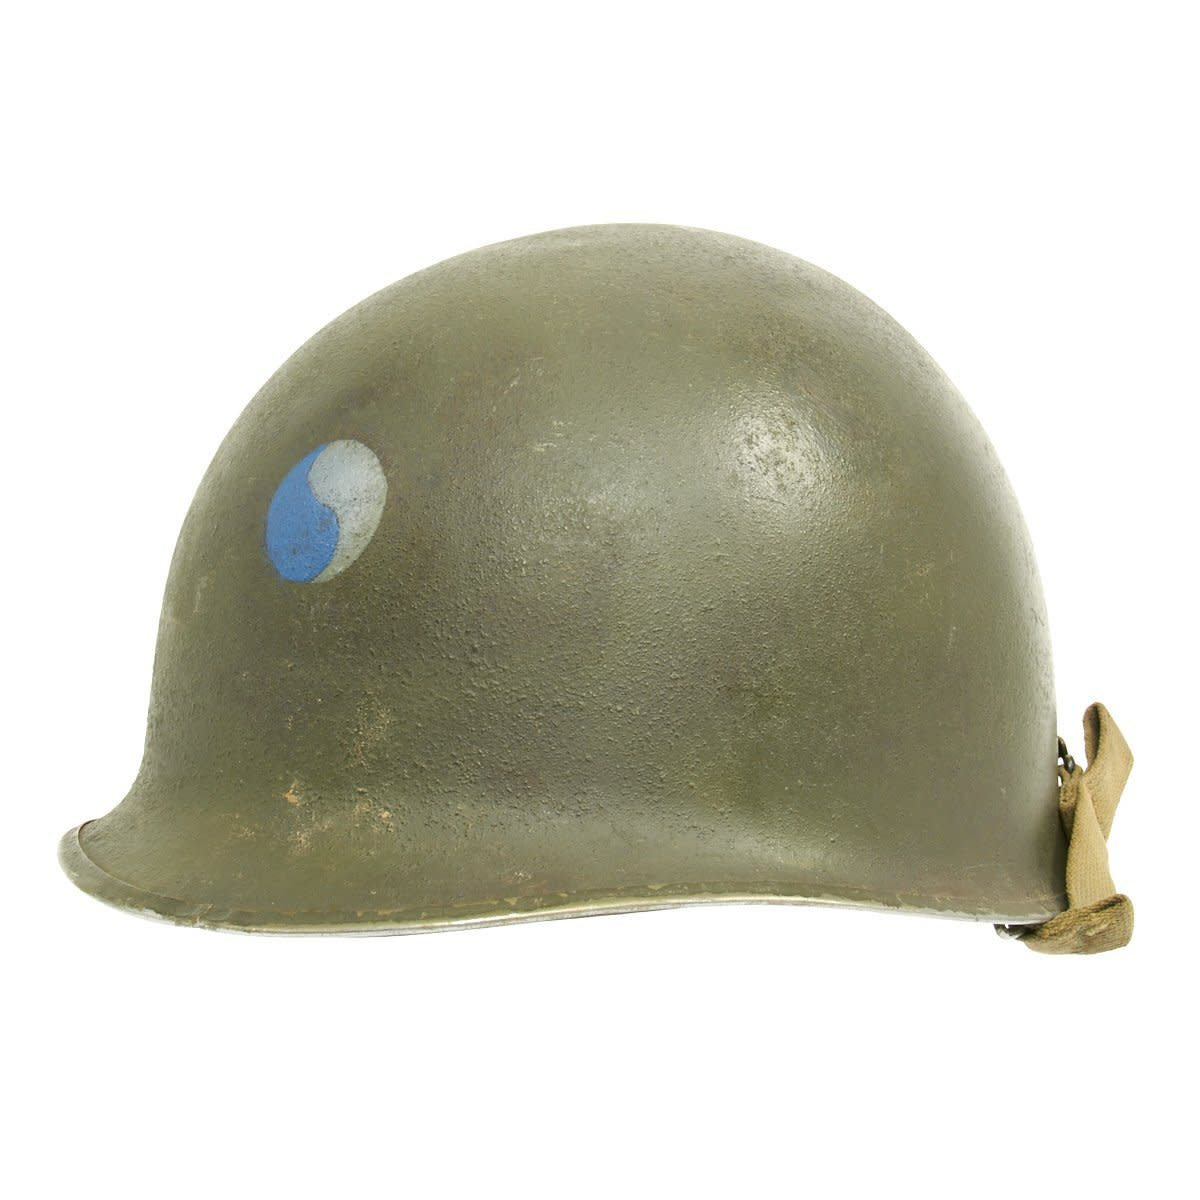 M1 helmet with 29th Division insignia